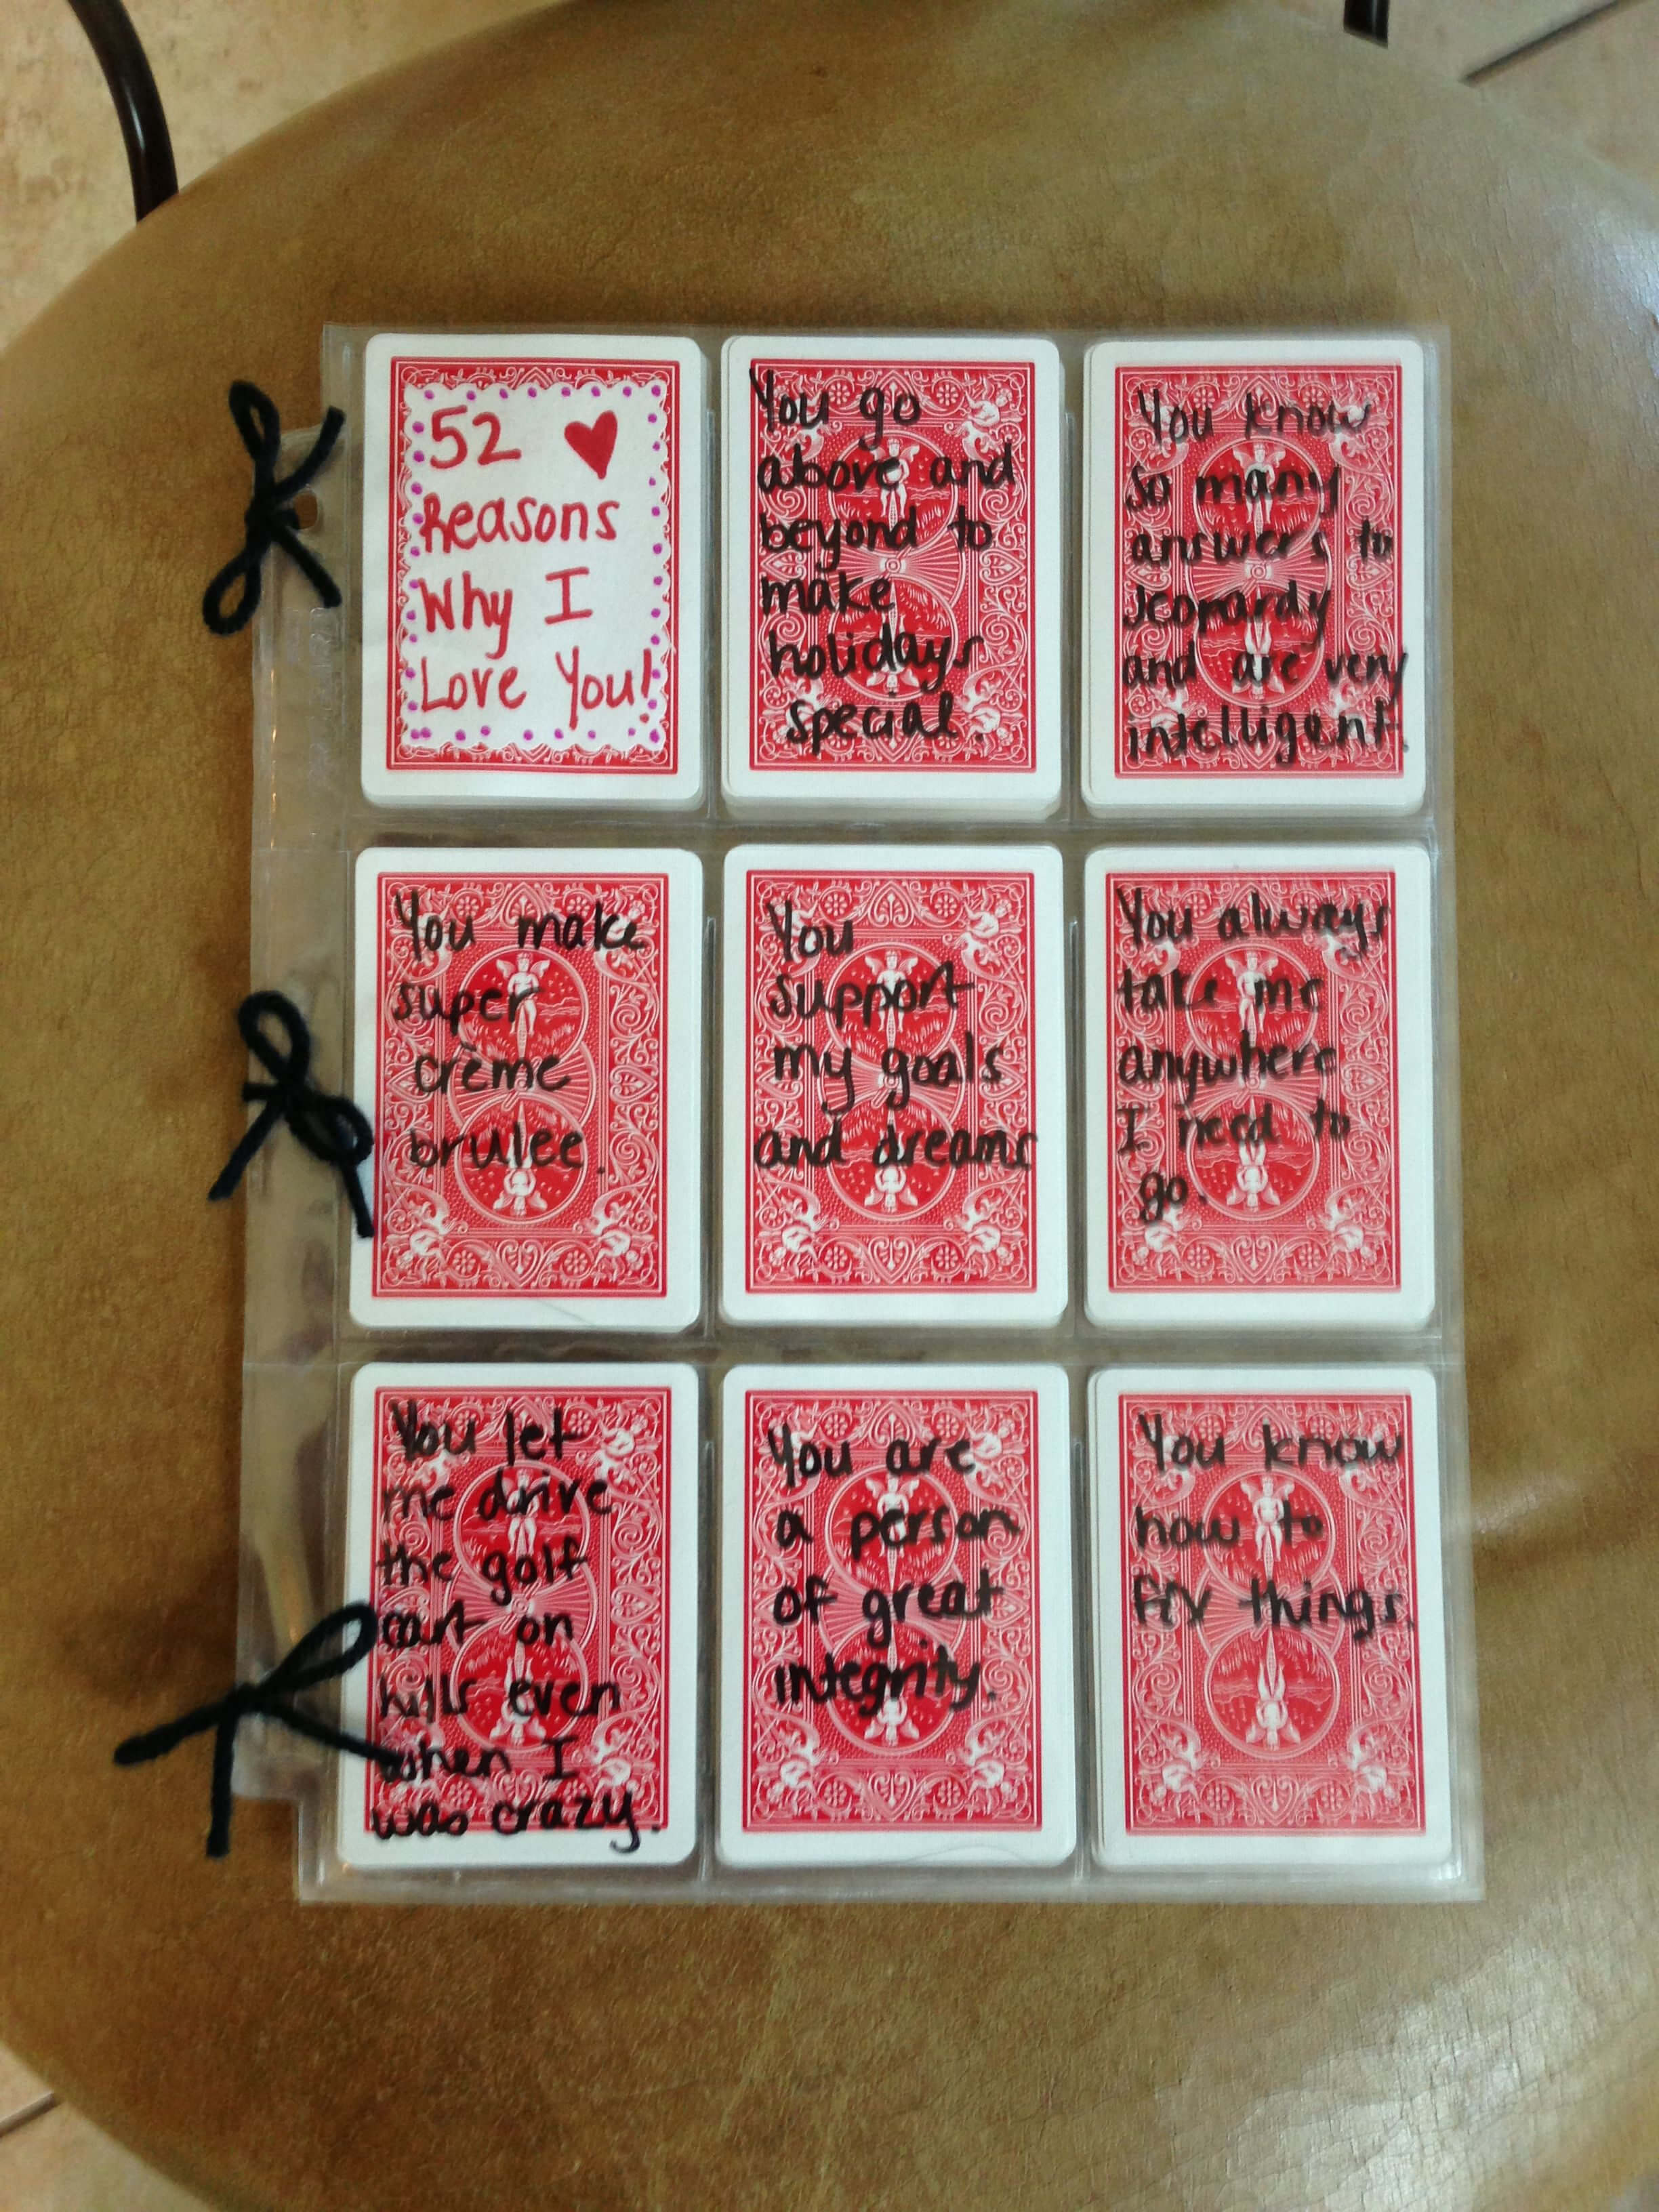 52 Reasons I Love You Write Reasons With Sharpie On Cards Pertaining To 52 Reasons Why I Love You Cards Templates